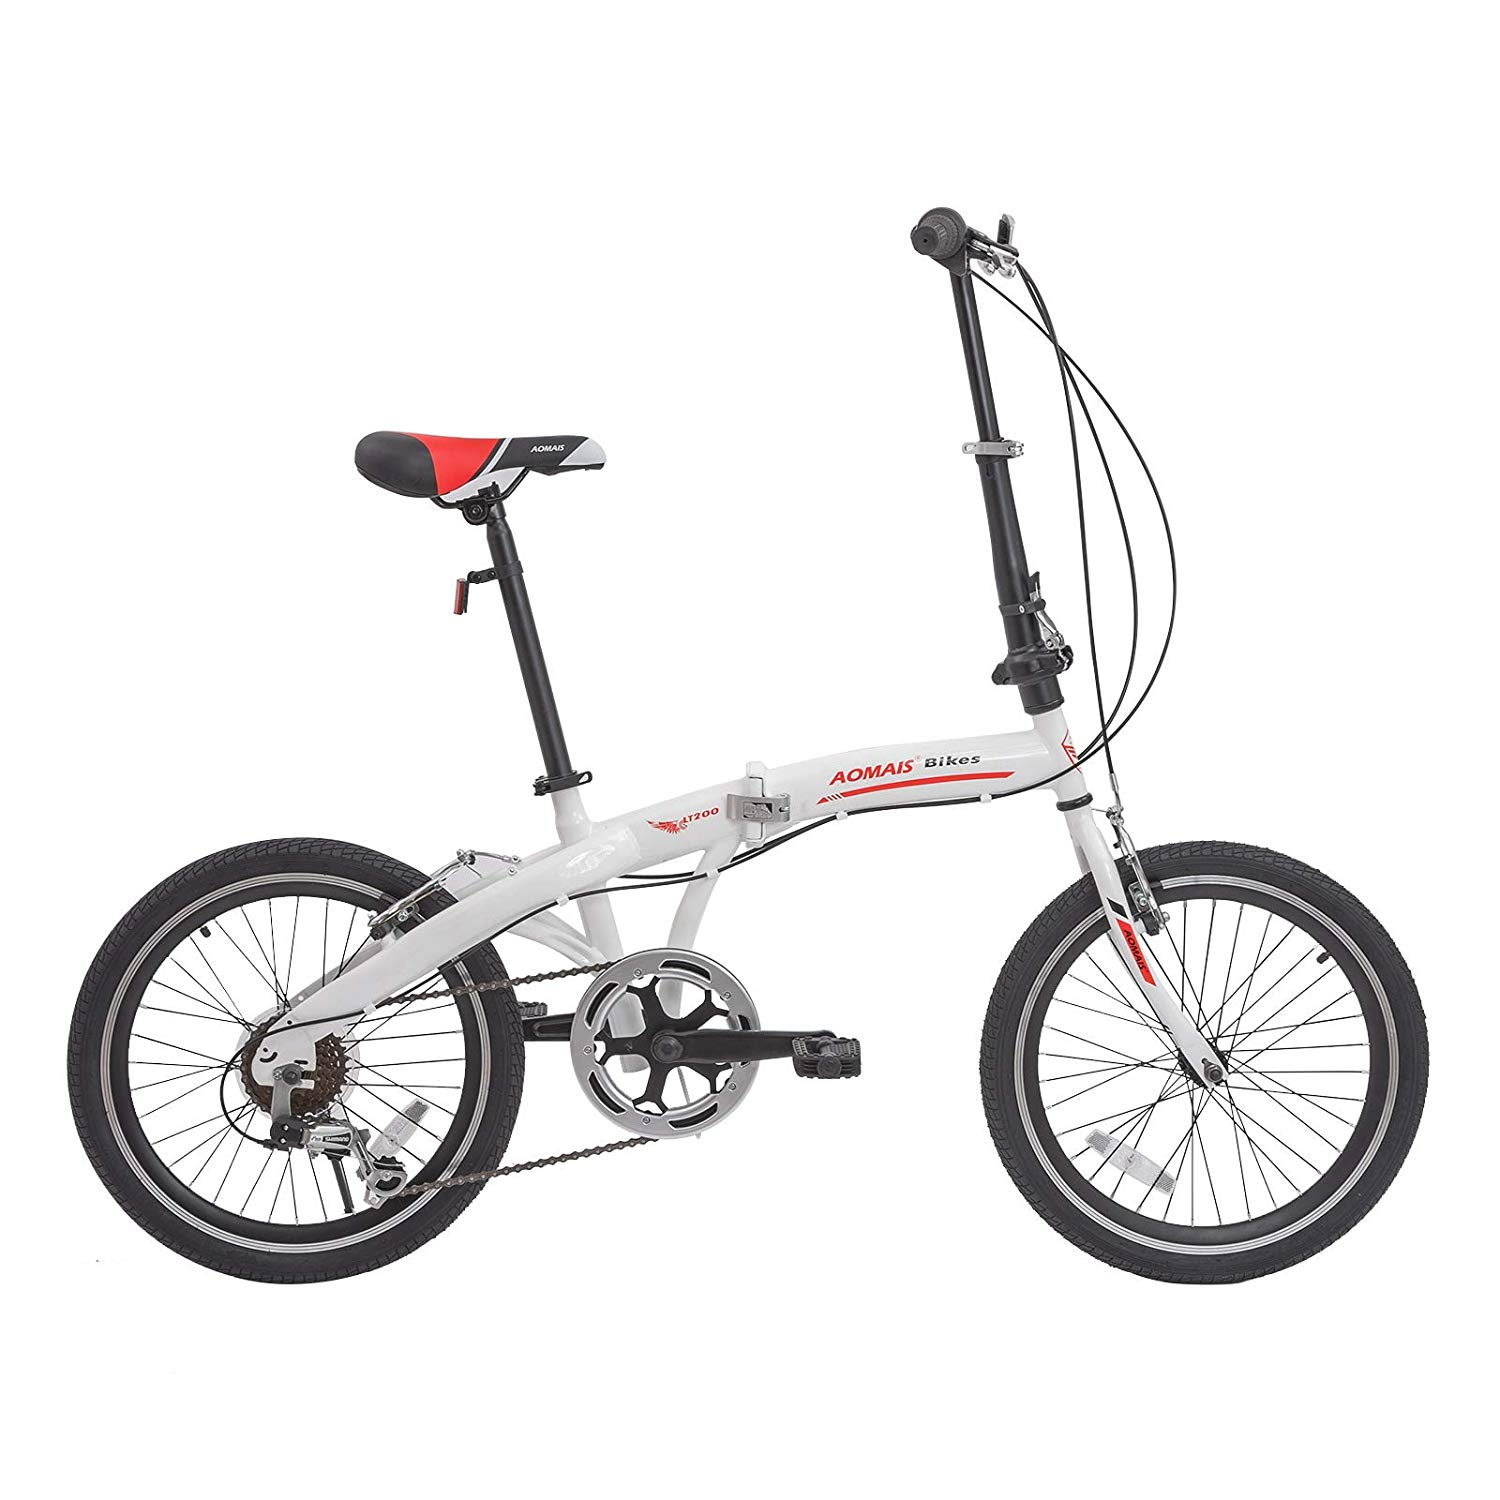 "Murtisol 20"" 7 Speed folding commuter bicycle foldable bike for adults DISC BRAKE"